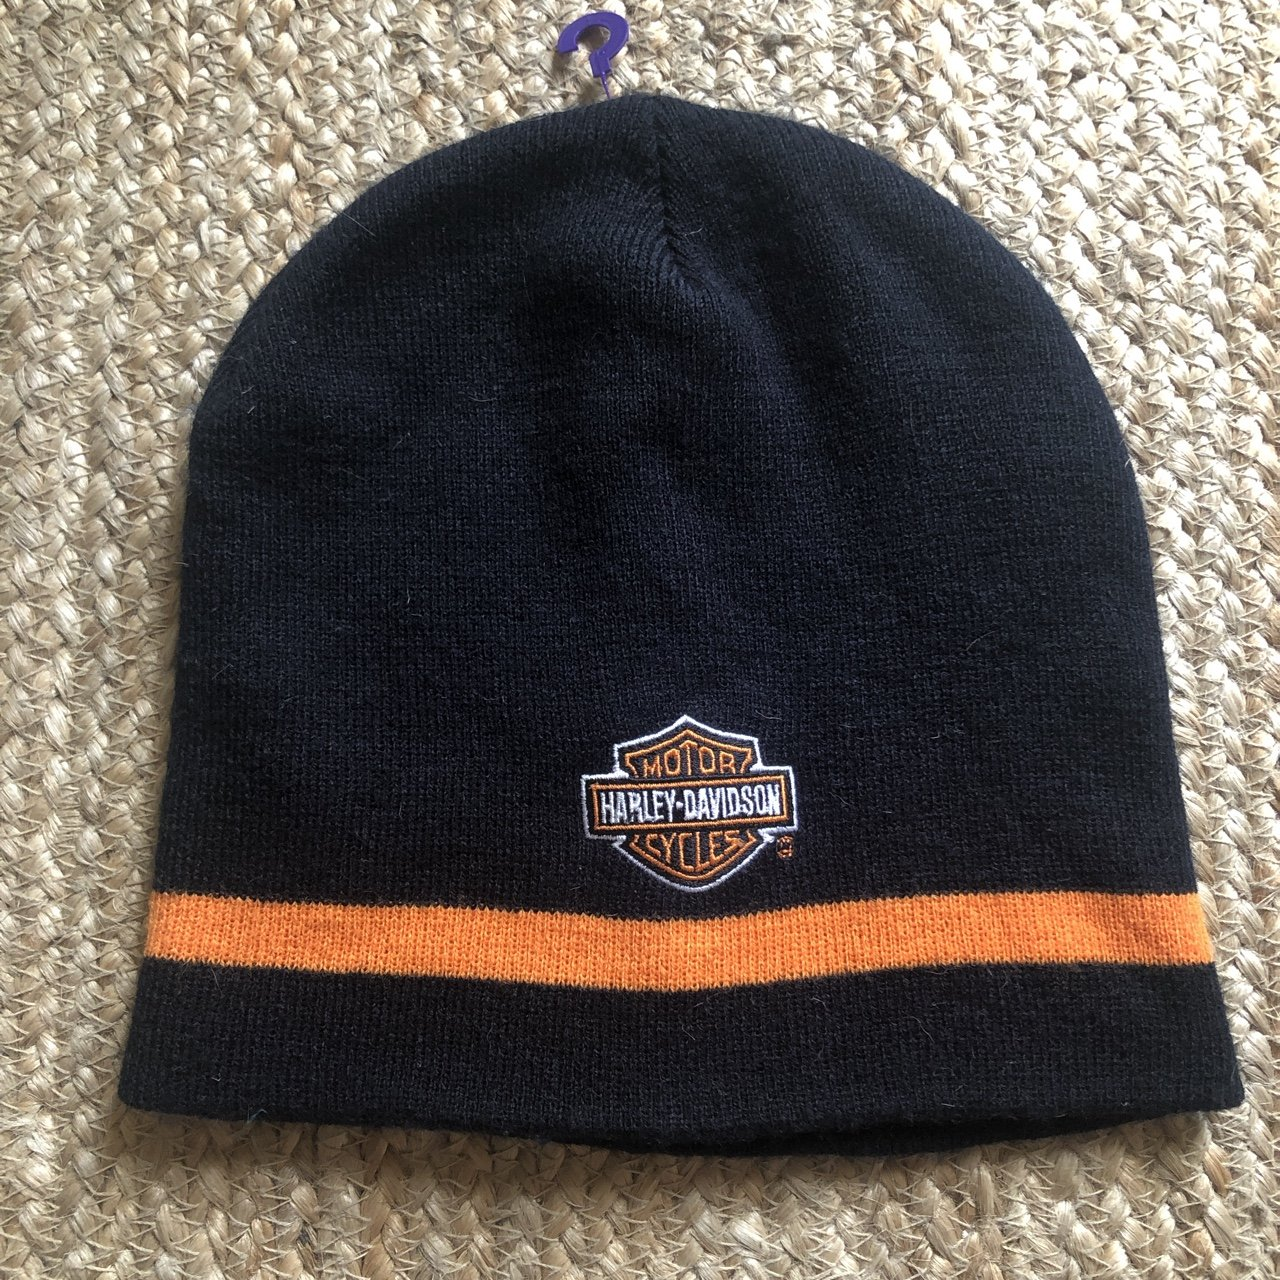 Harley Davidson Beanie NWOT Unisex Shipping included 31faf5242d41